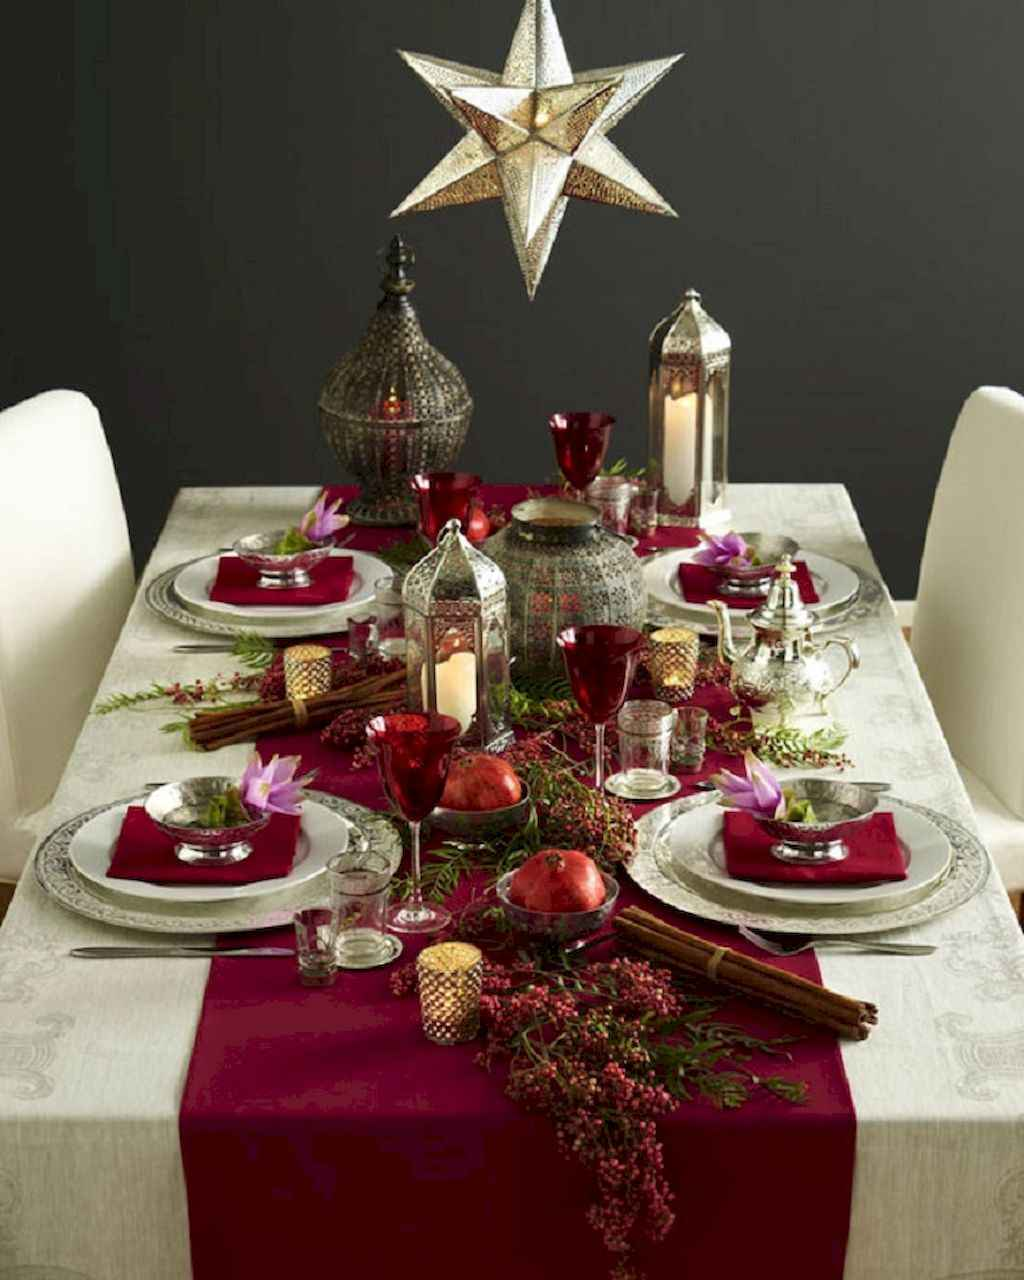 40 Awesome Christmas Dinner Table Decorations Ideas (18